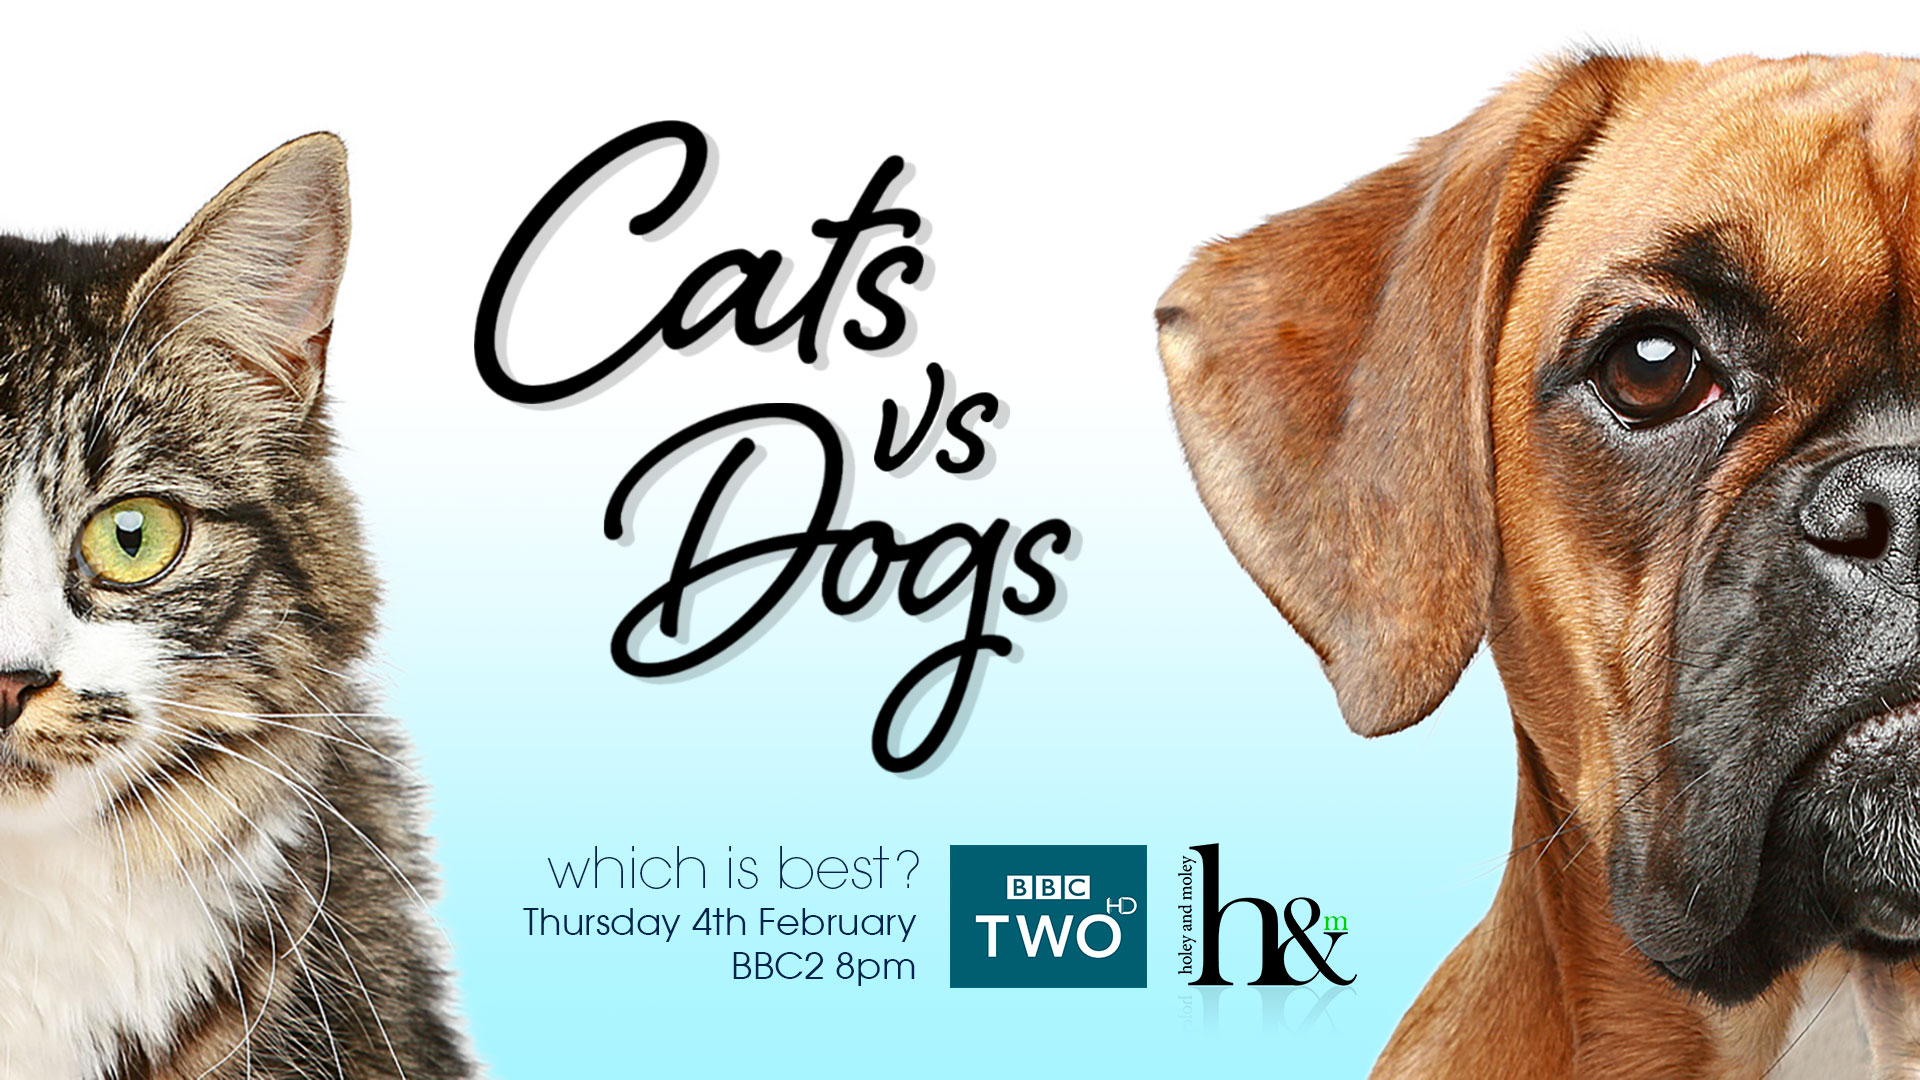 Cats vs Dogs Which is Best? ©HoleyandMoley 2016